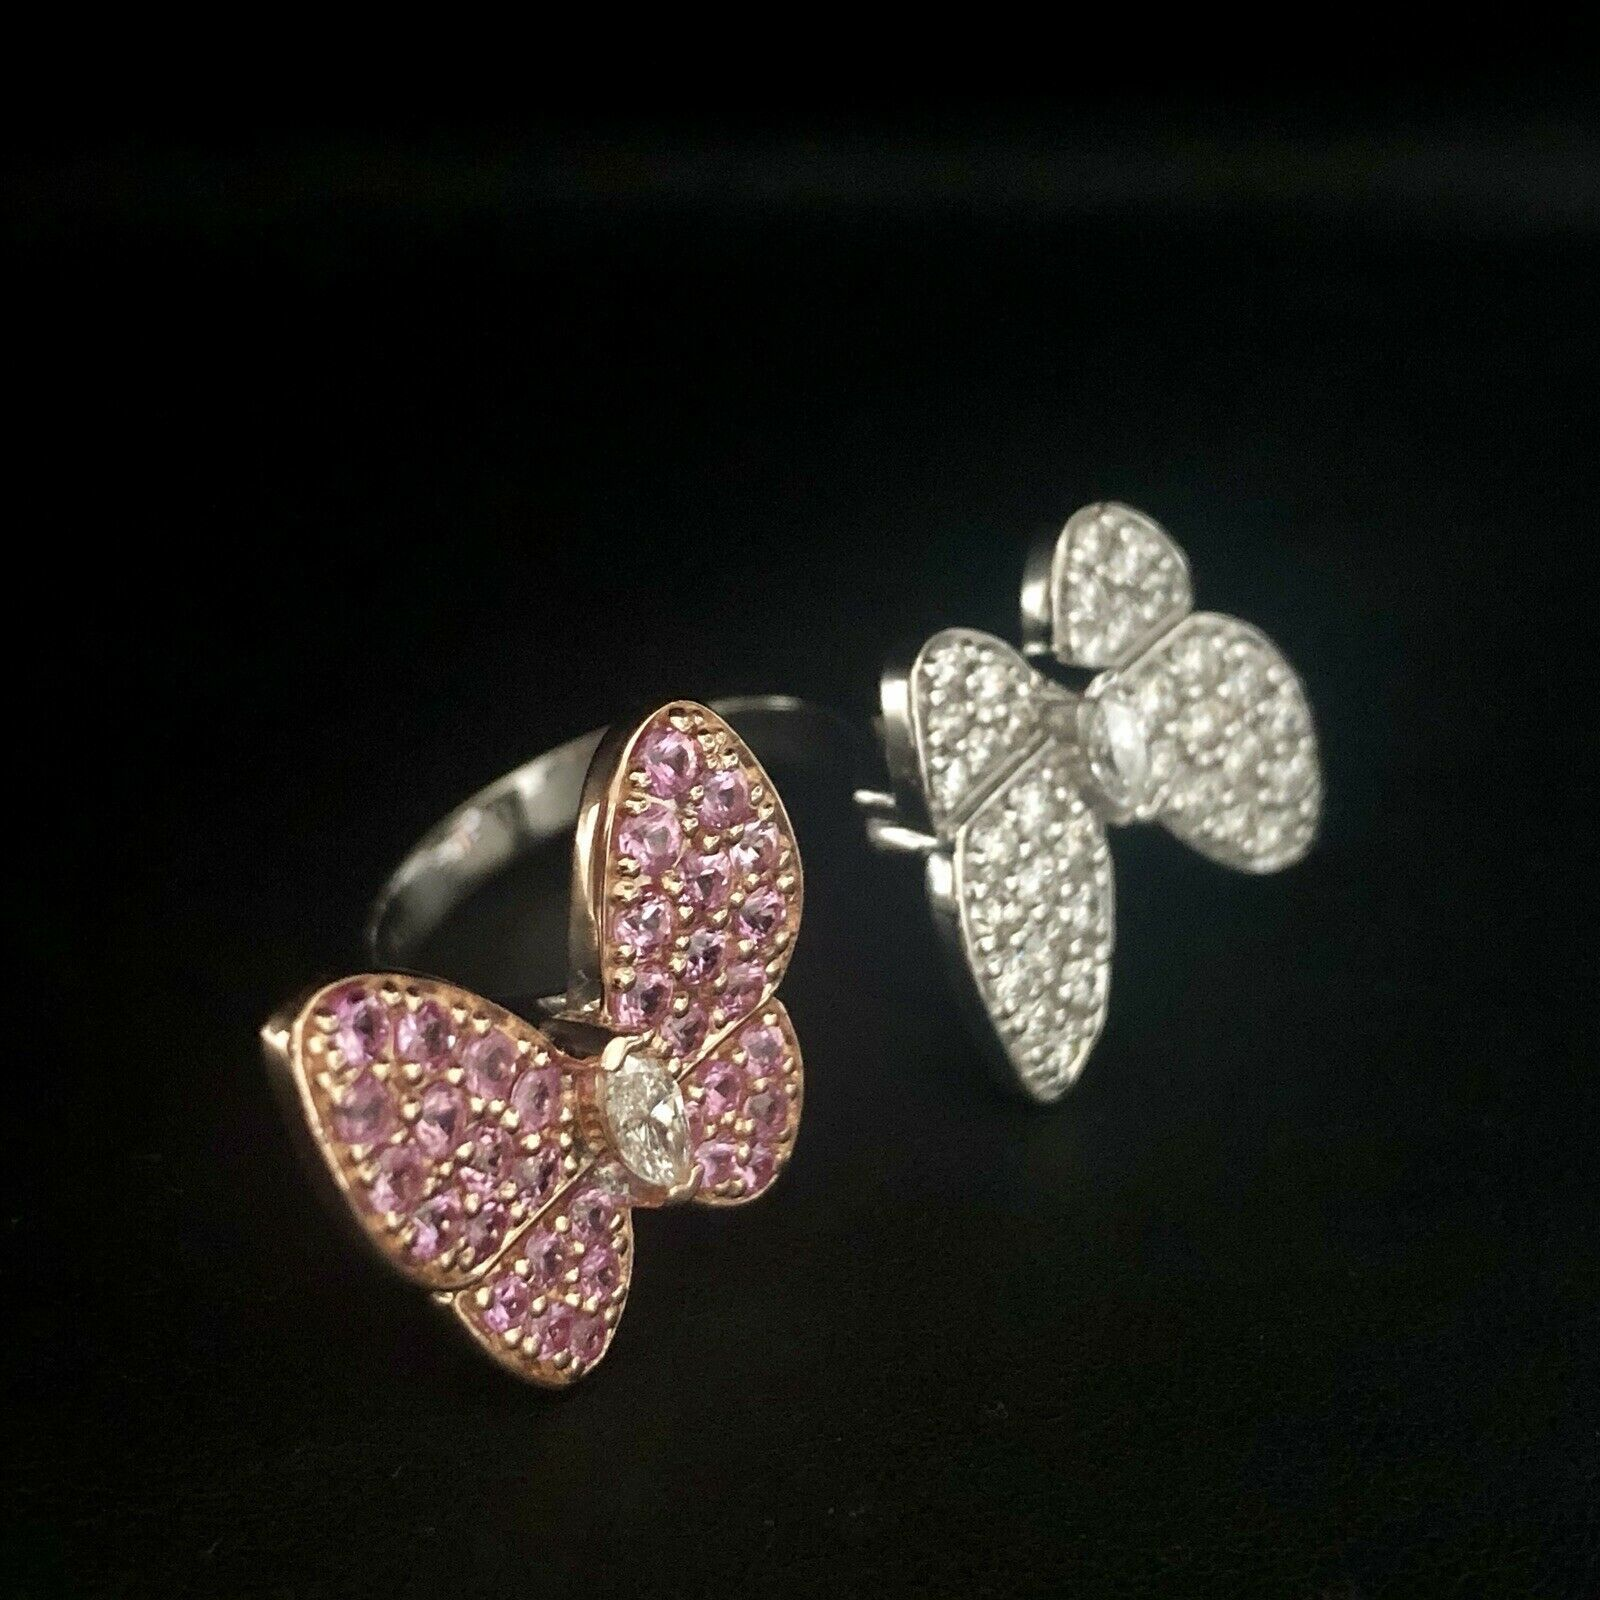 Two Butterfly between-the-finger ring VAN CLEEF PINK Sapphire & Diamond Ring 18K